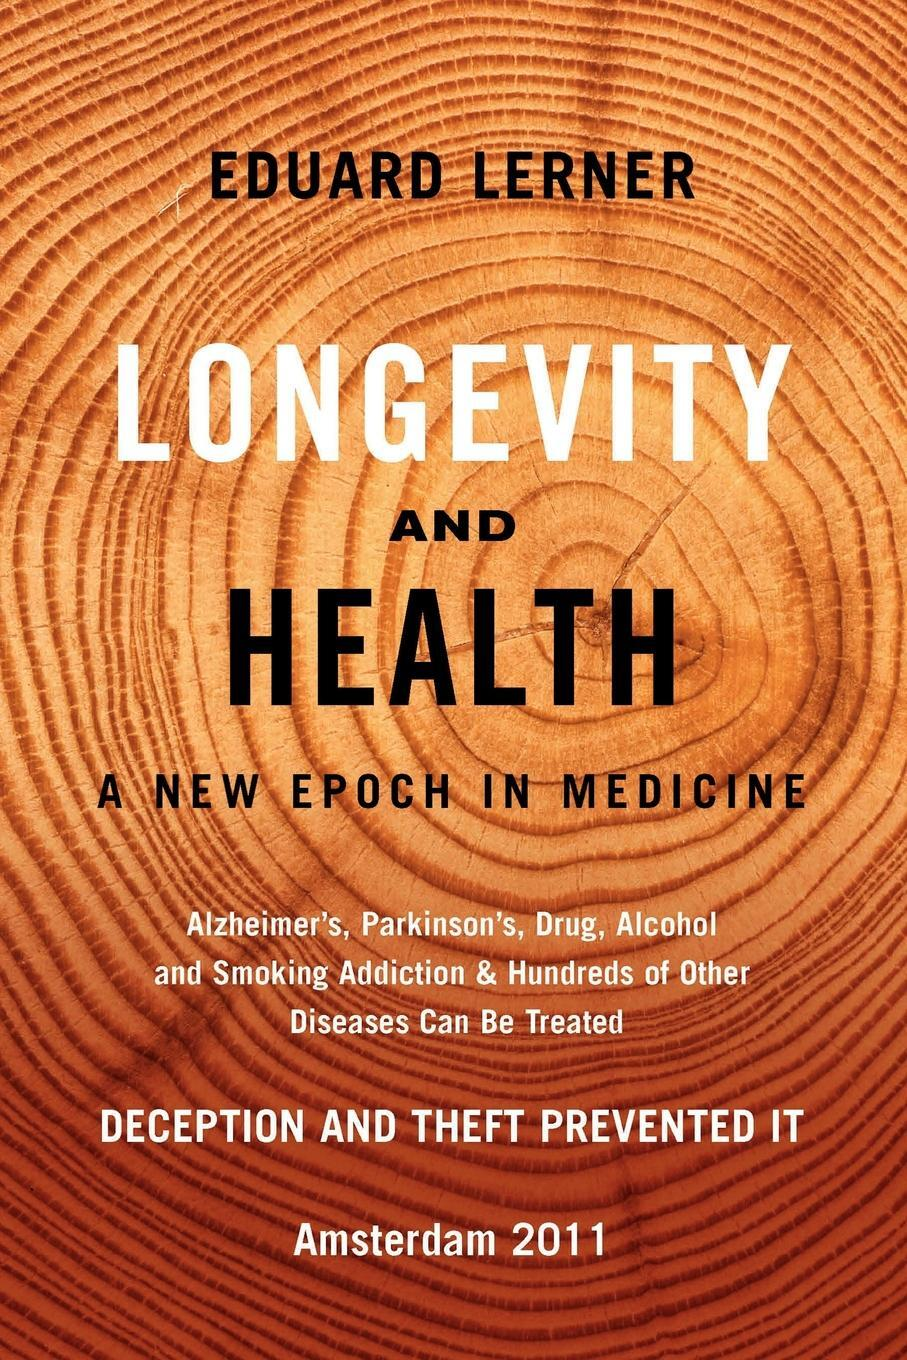 Longevity and Health. A New Epoch In Medicine: Alzheimer's, Parkinson's, Drug, Alcohol and Smoking Addiction & Hundreds of Other Diseases Can Be Treated - Deception and Theft Prevented It